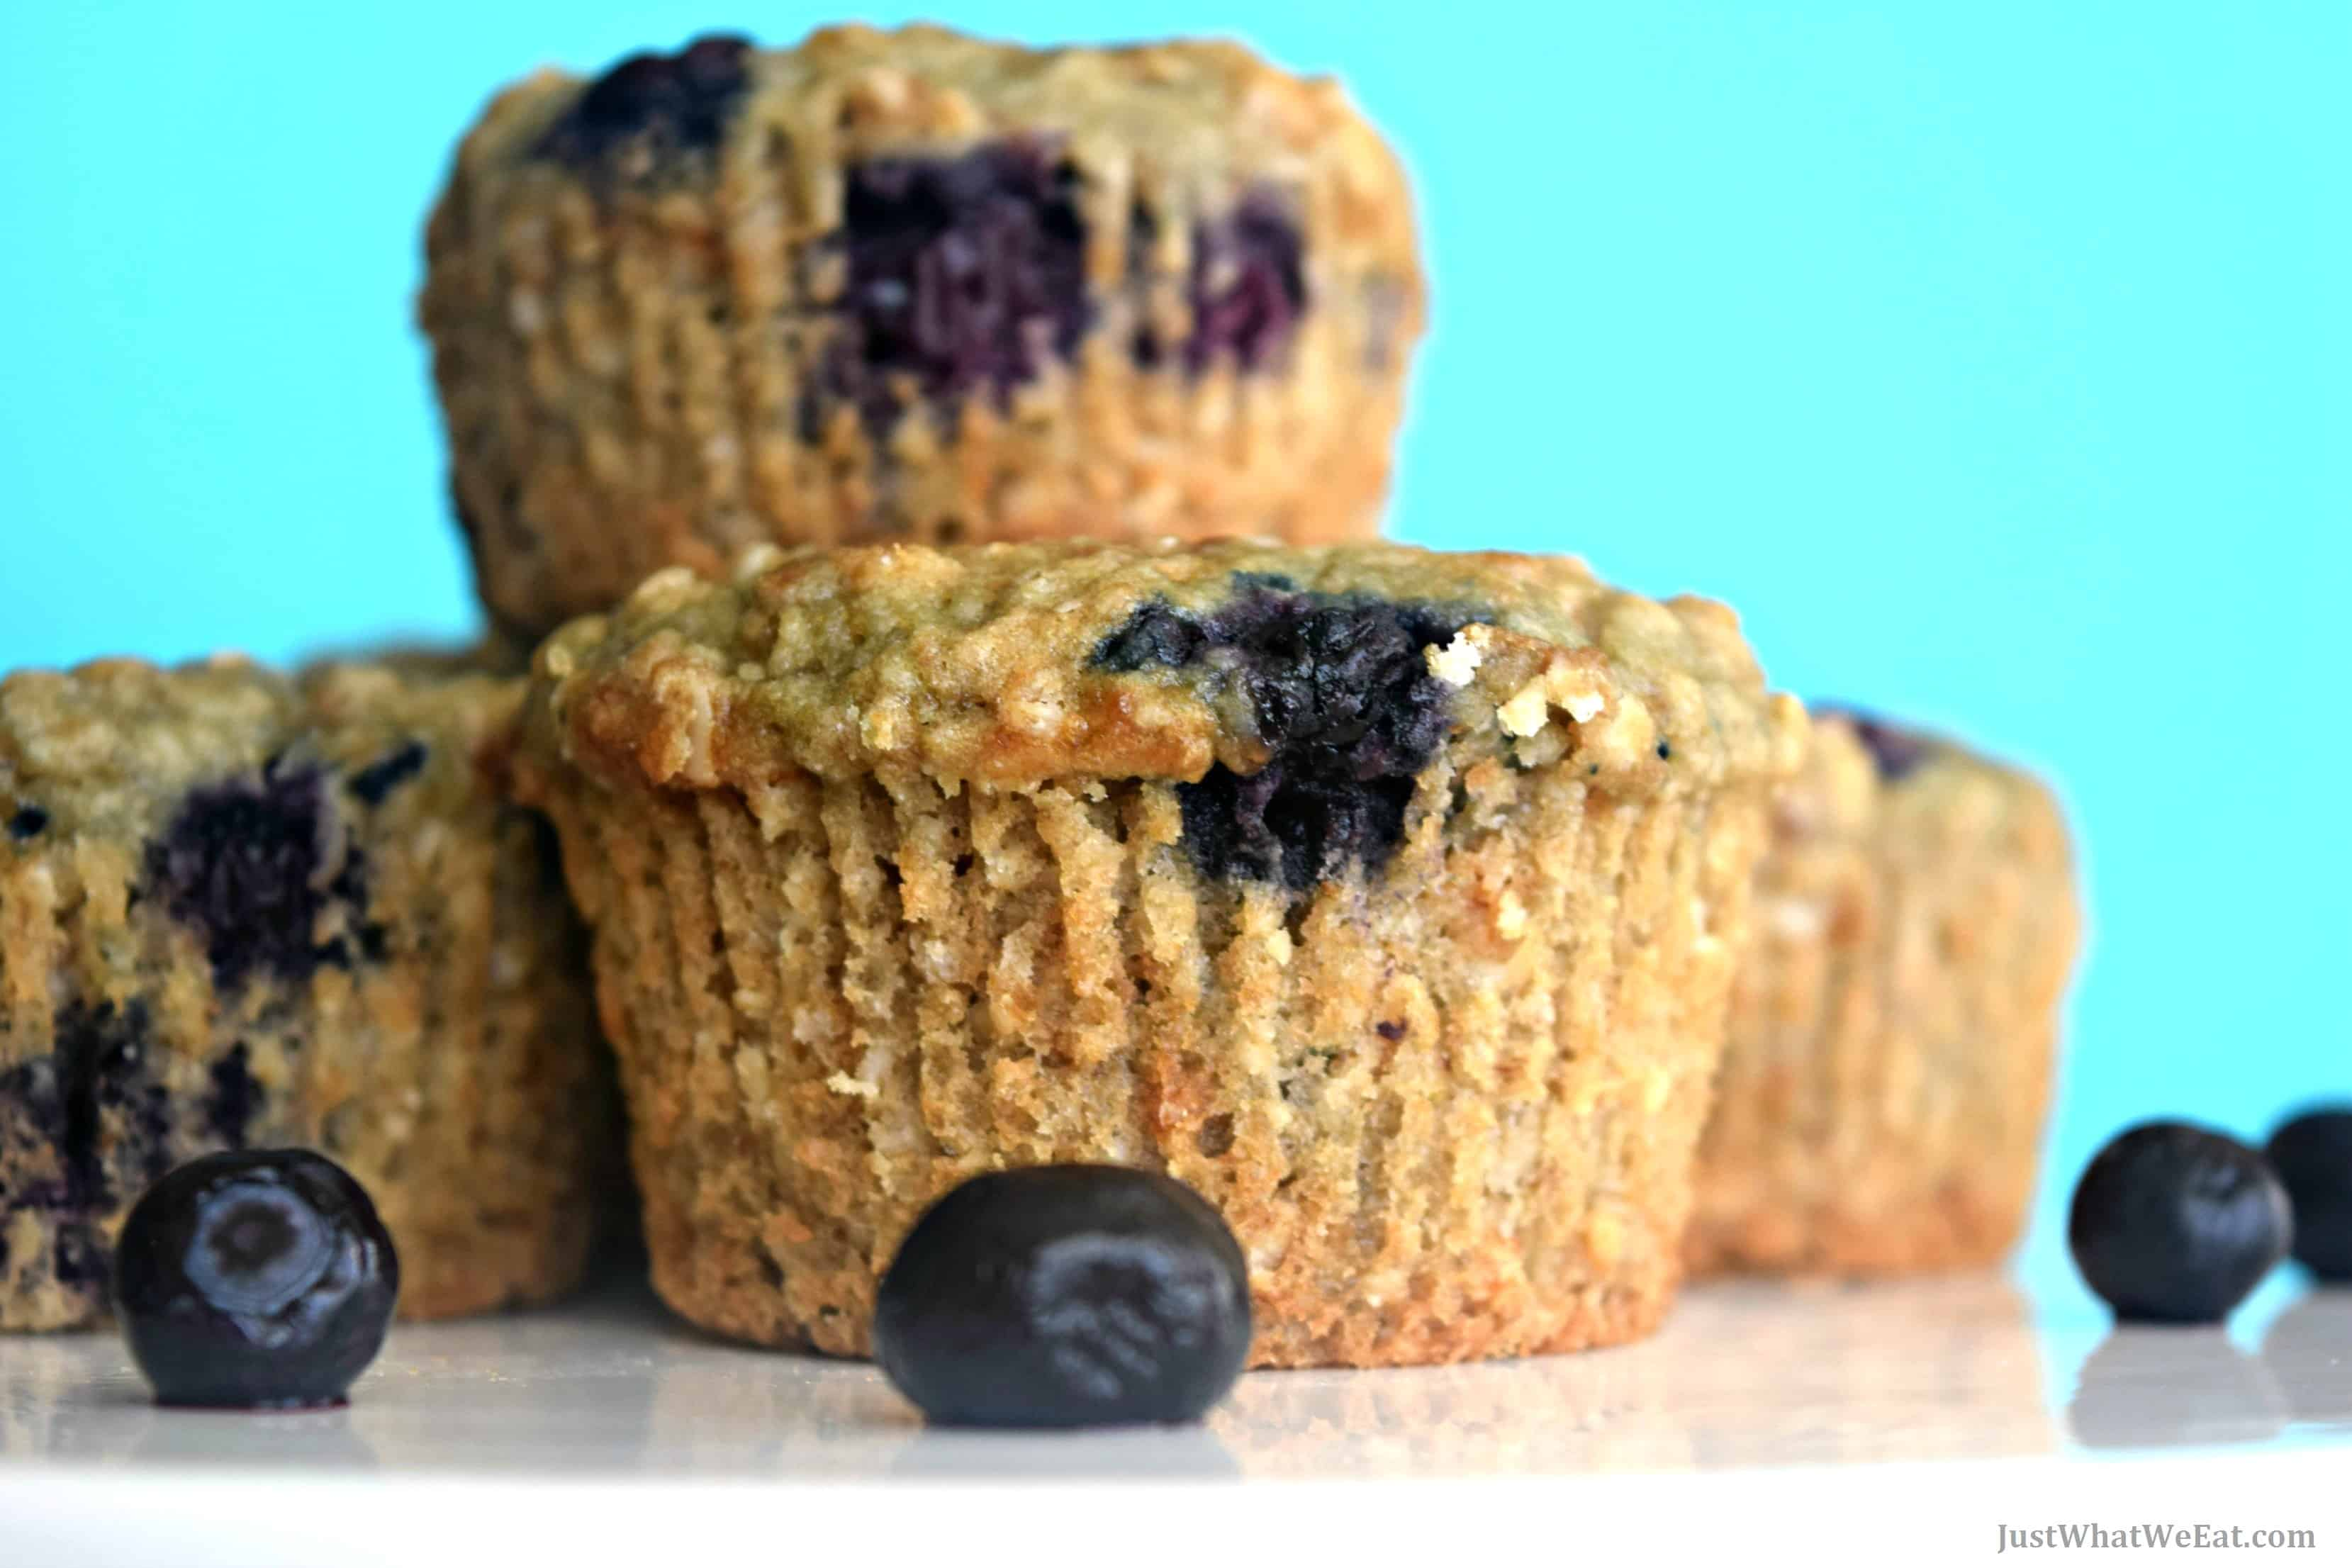 These gluten free, vegan, and refined sugar free blueberry oat muffins are delicious! The texture is soft but hearty because of the oats and the sweet blueberry flavor is exactly what I look for in a good blueberry muffin. #glutenfree #vegan #dairyfree #muffins #breakfast